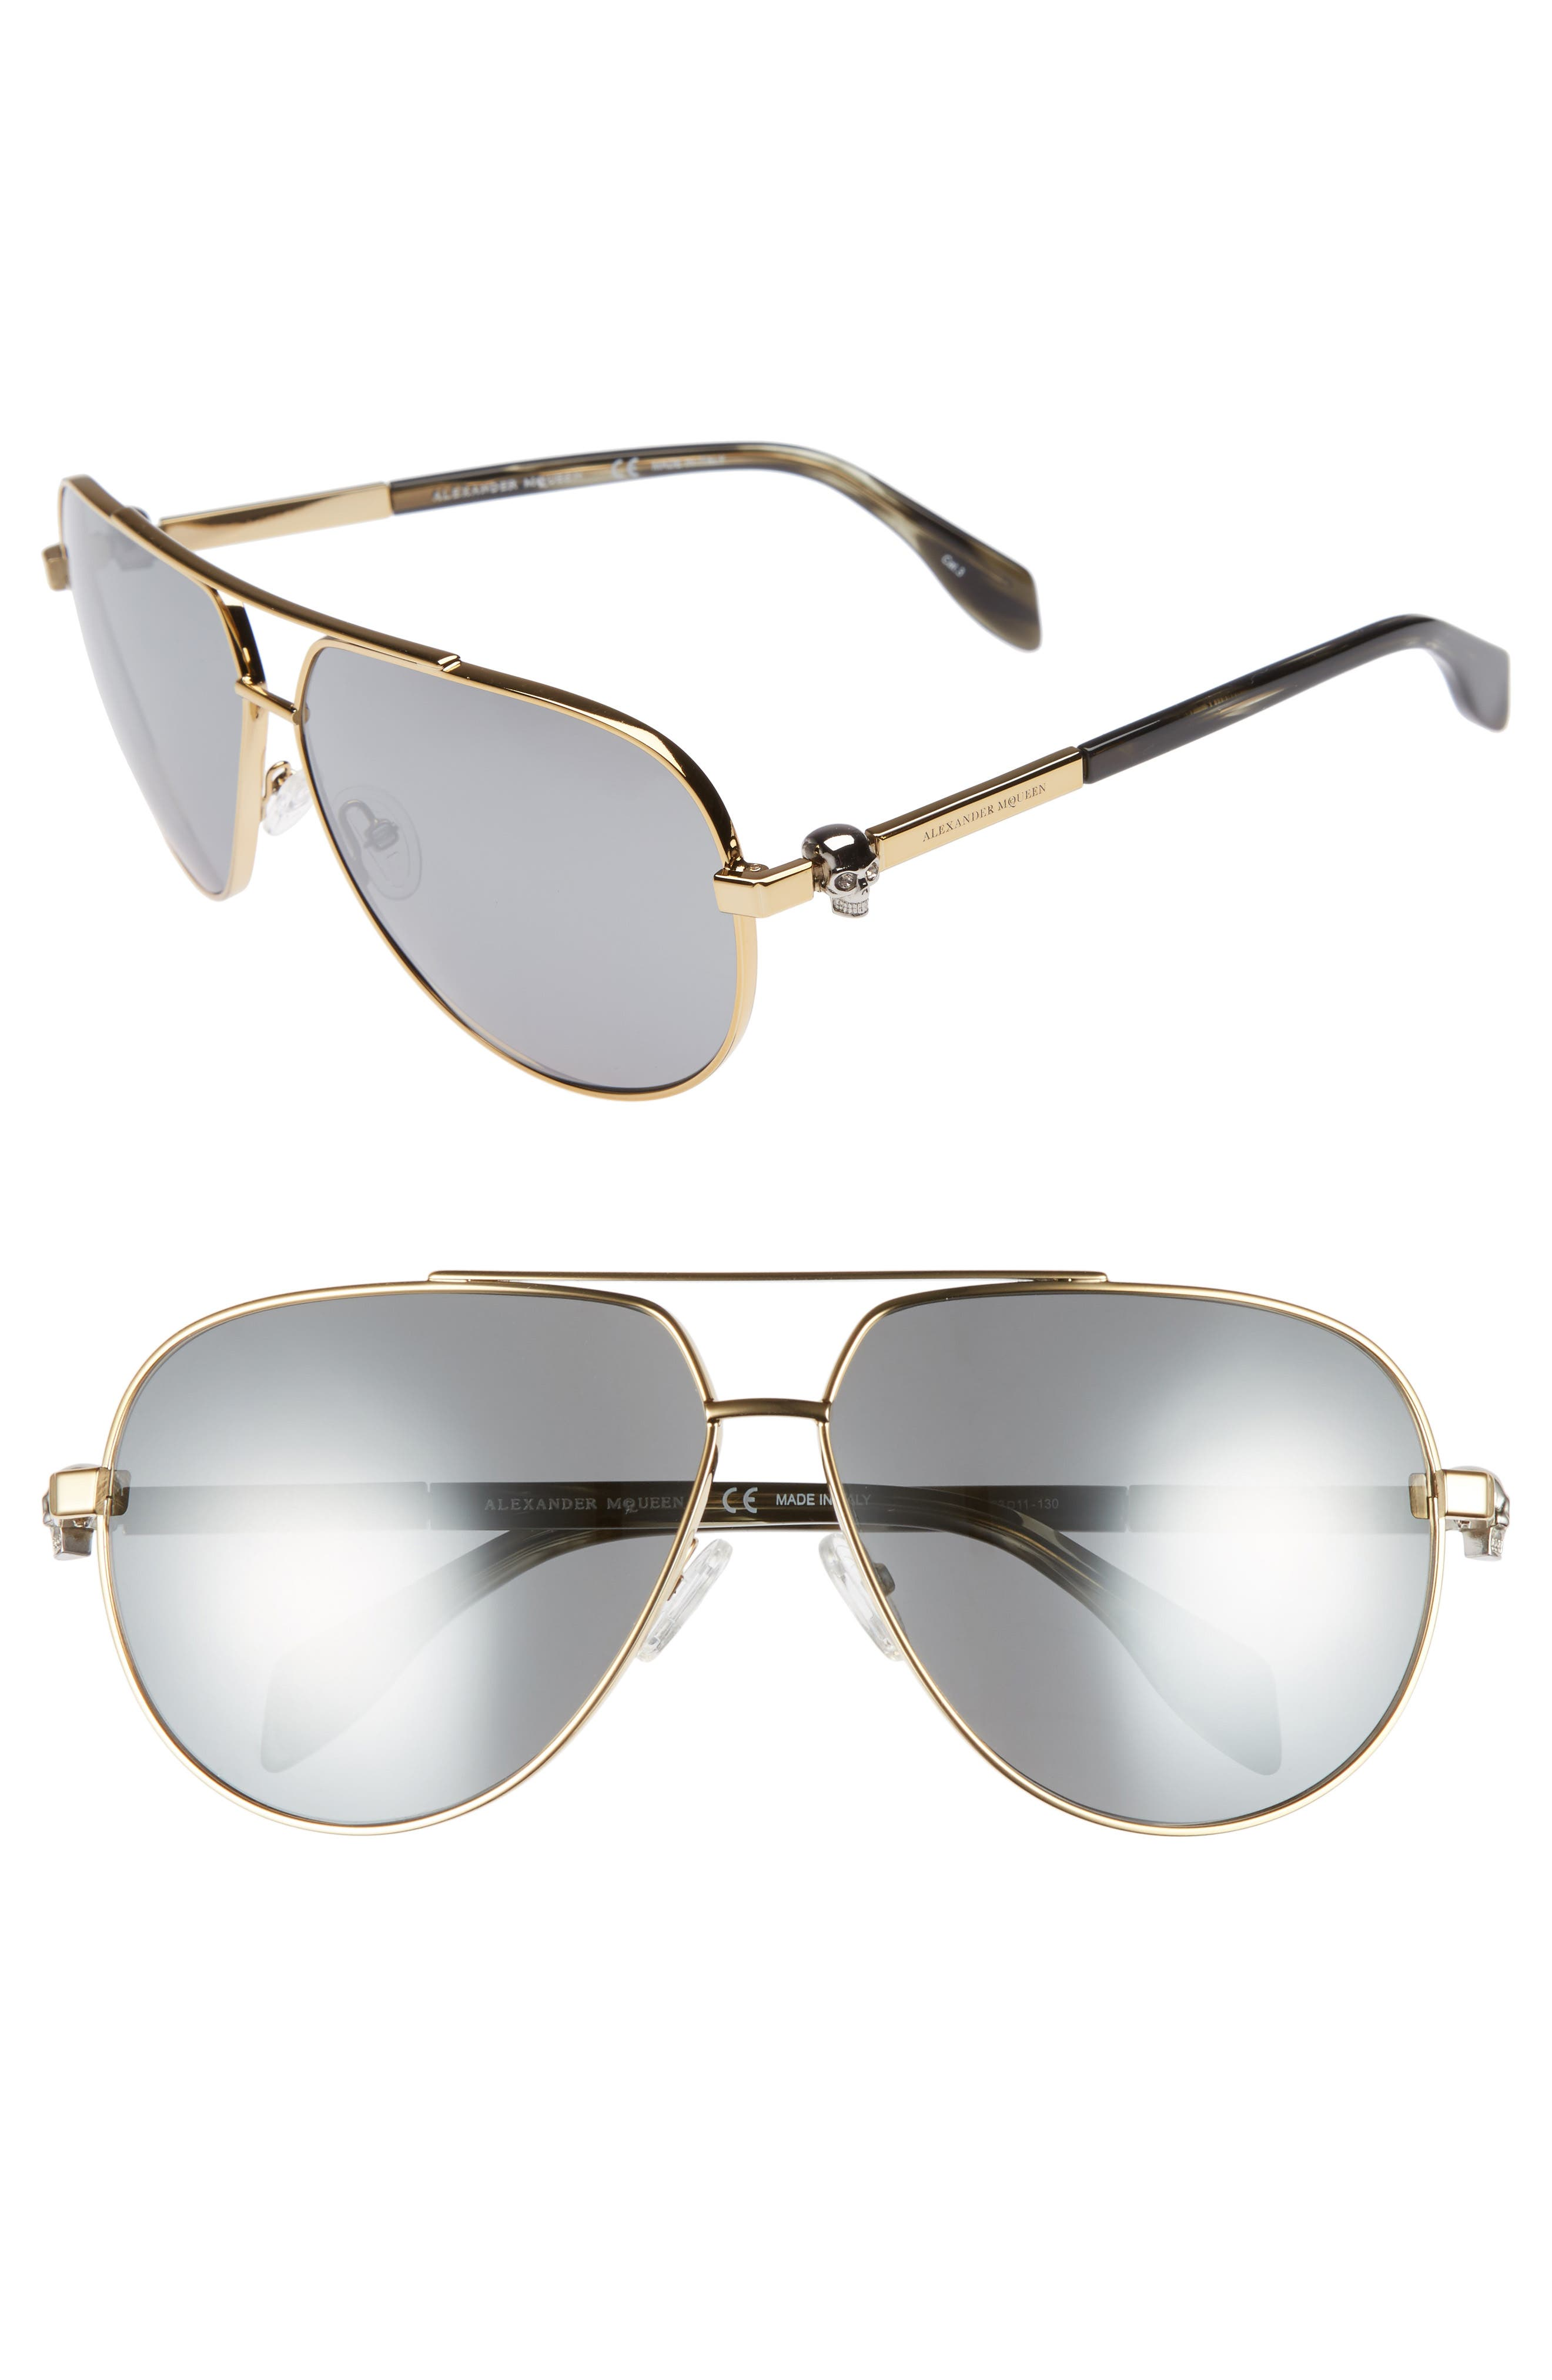 63mm Aviator Sunglasses,                         Main,                         color, Gold